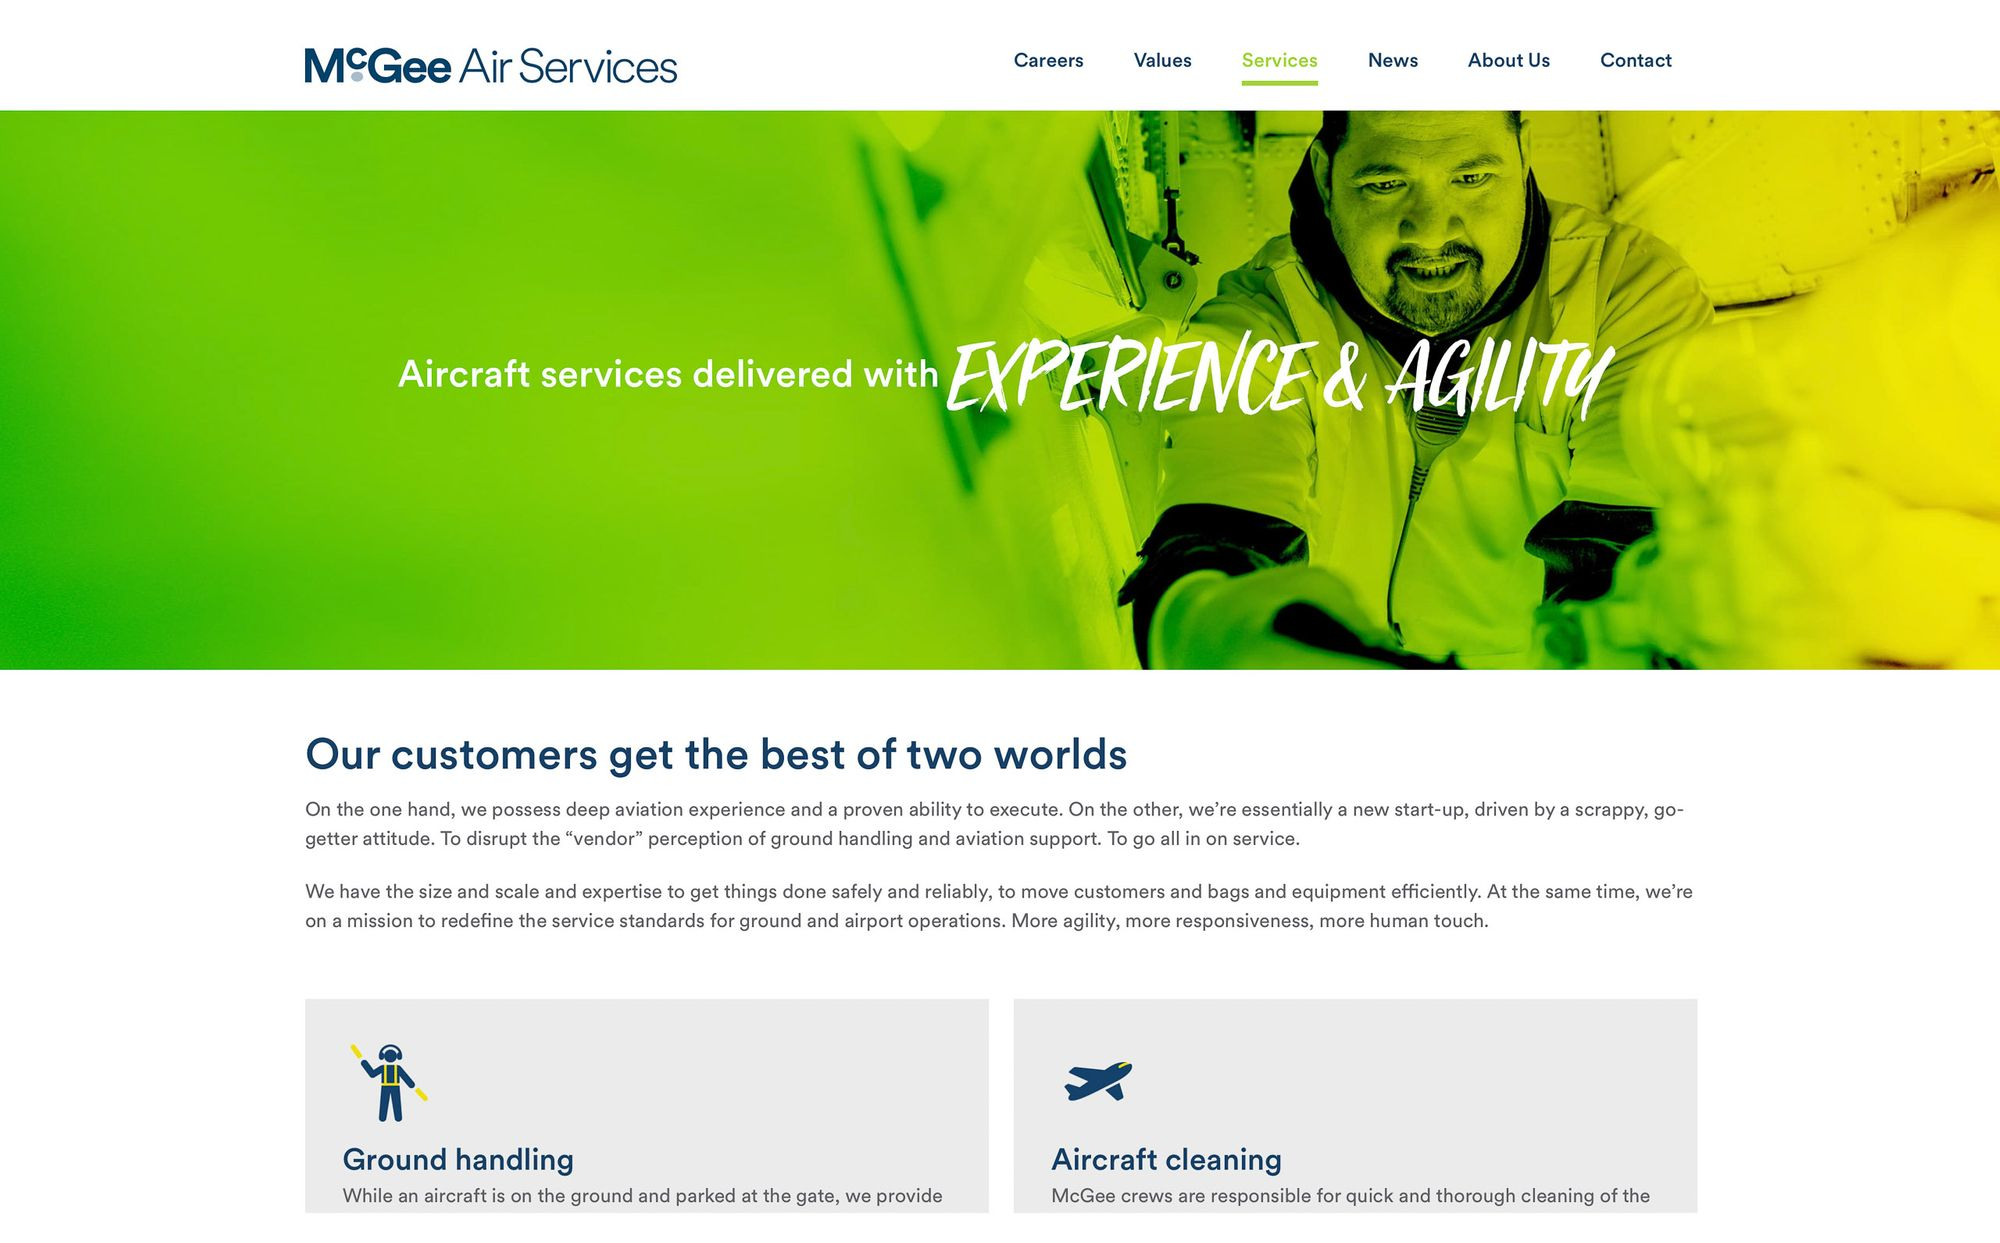 mcgee.airservices_003.jpg